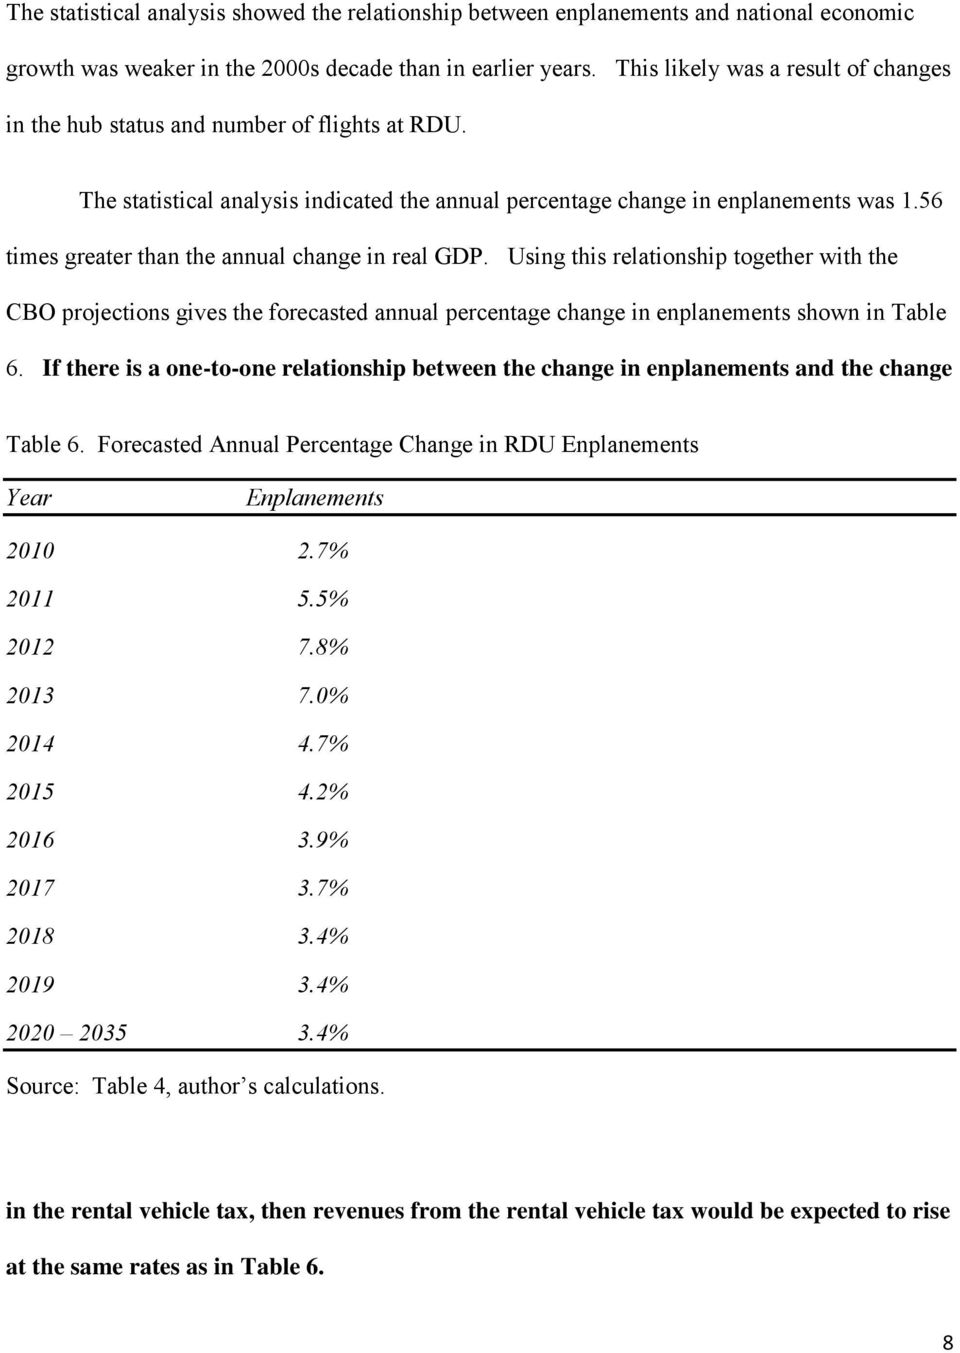 56 times greater than the annual change in real GDP. Using this relationship together with the CBO projections gives the forecasted annual percentage change in enplanements shown in Table 6.